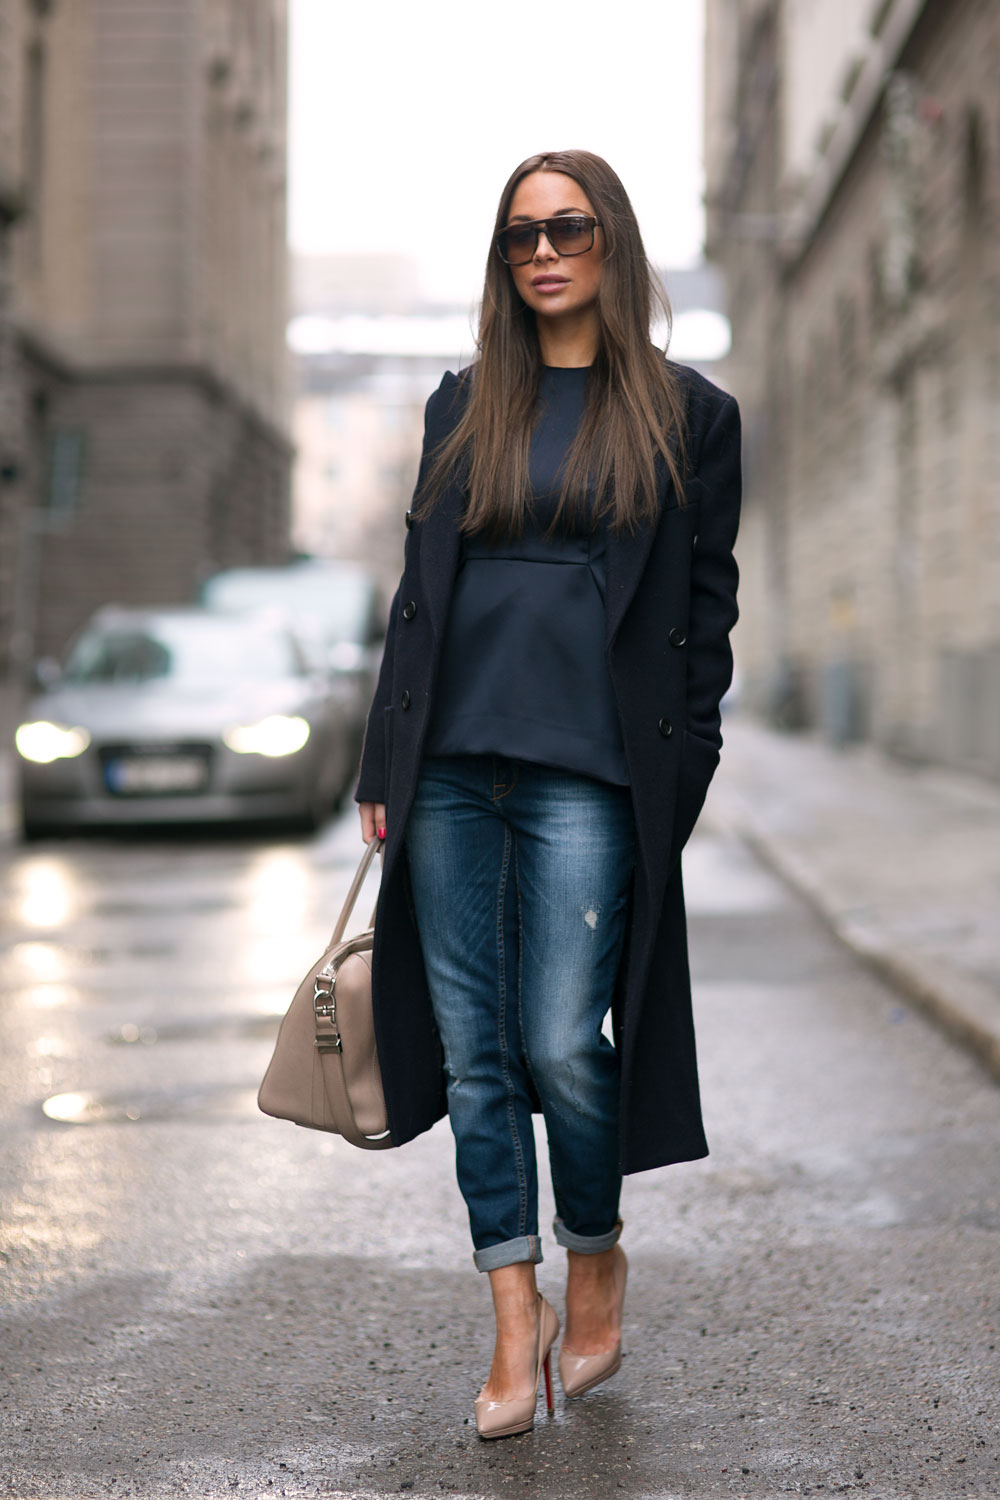 Johanna Olsson goes street style in Stockholm